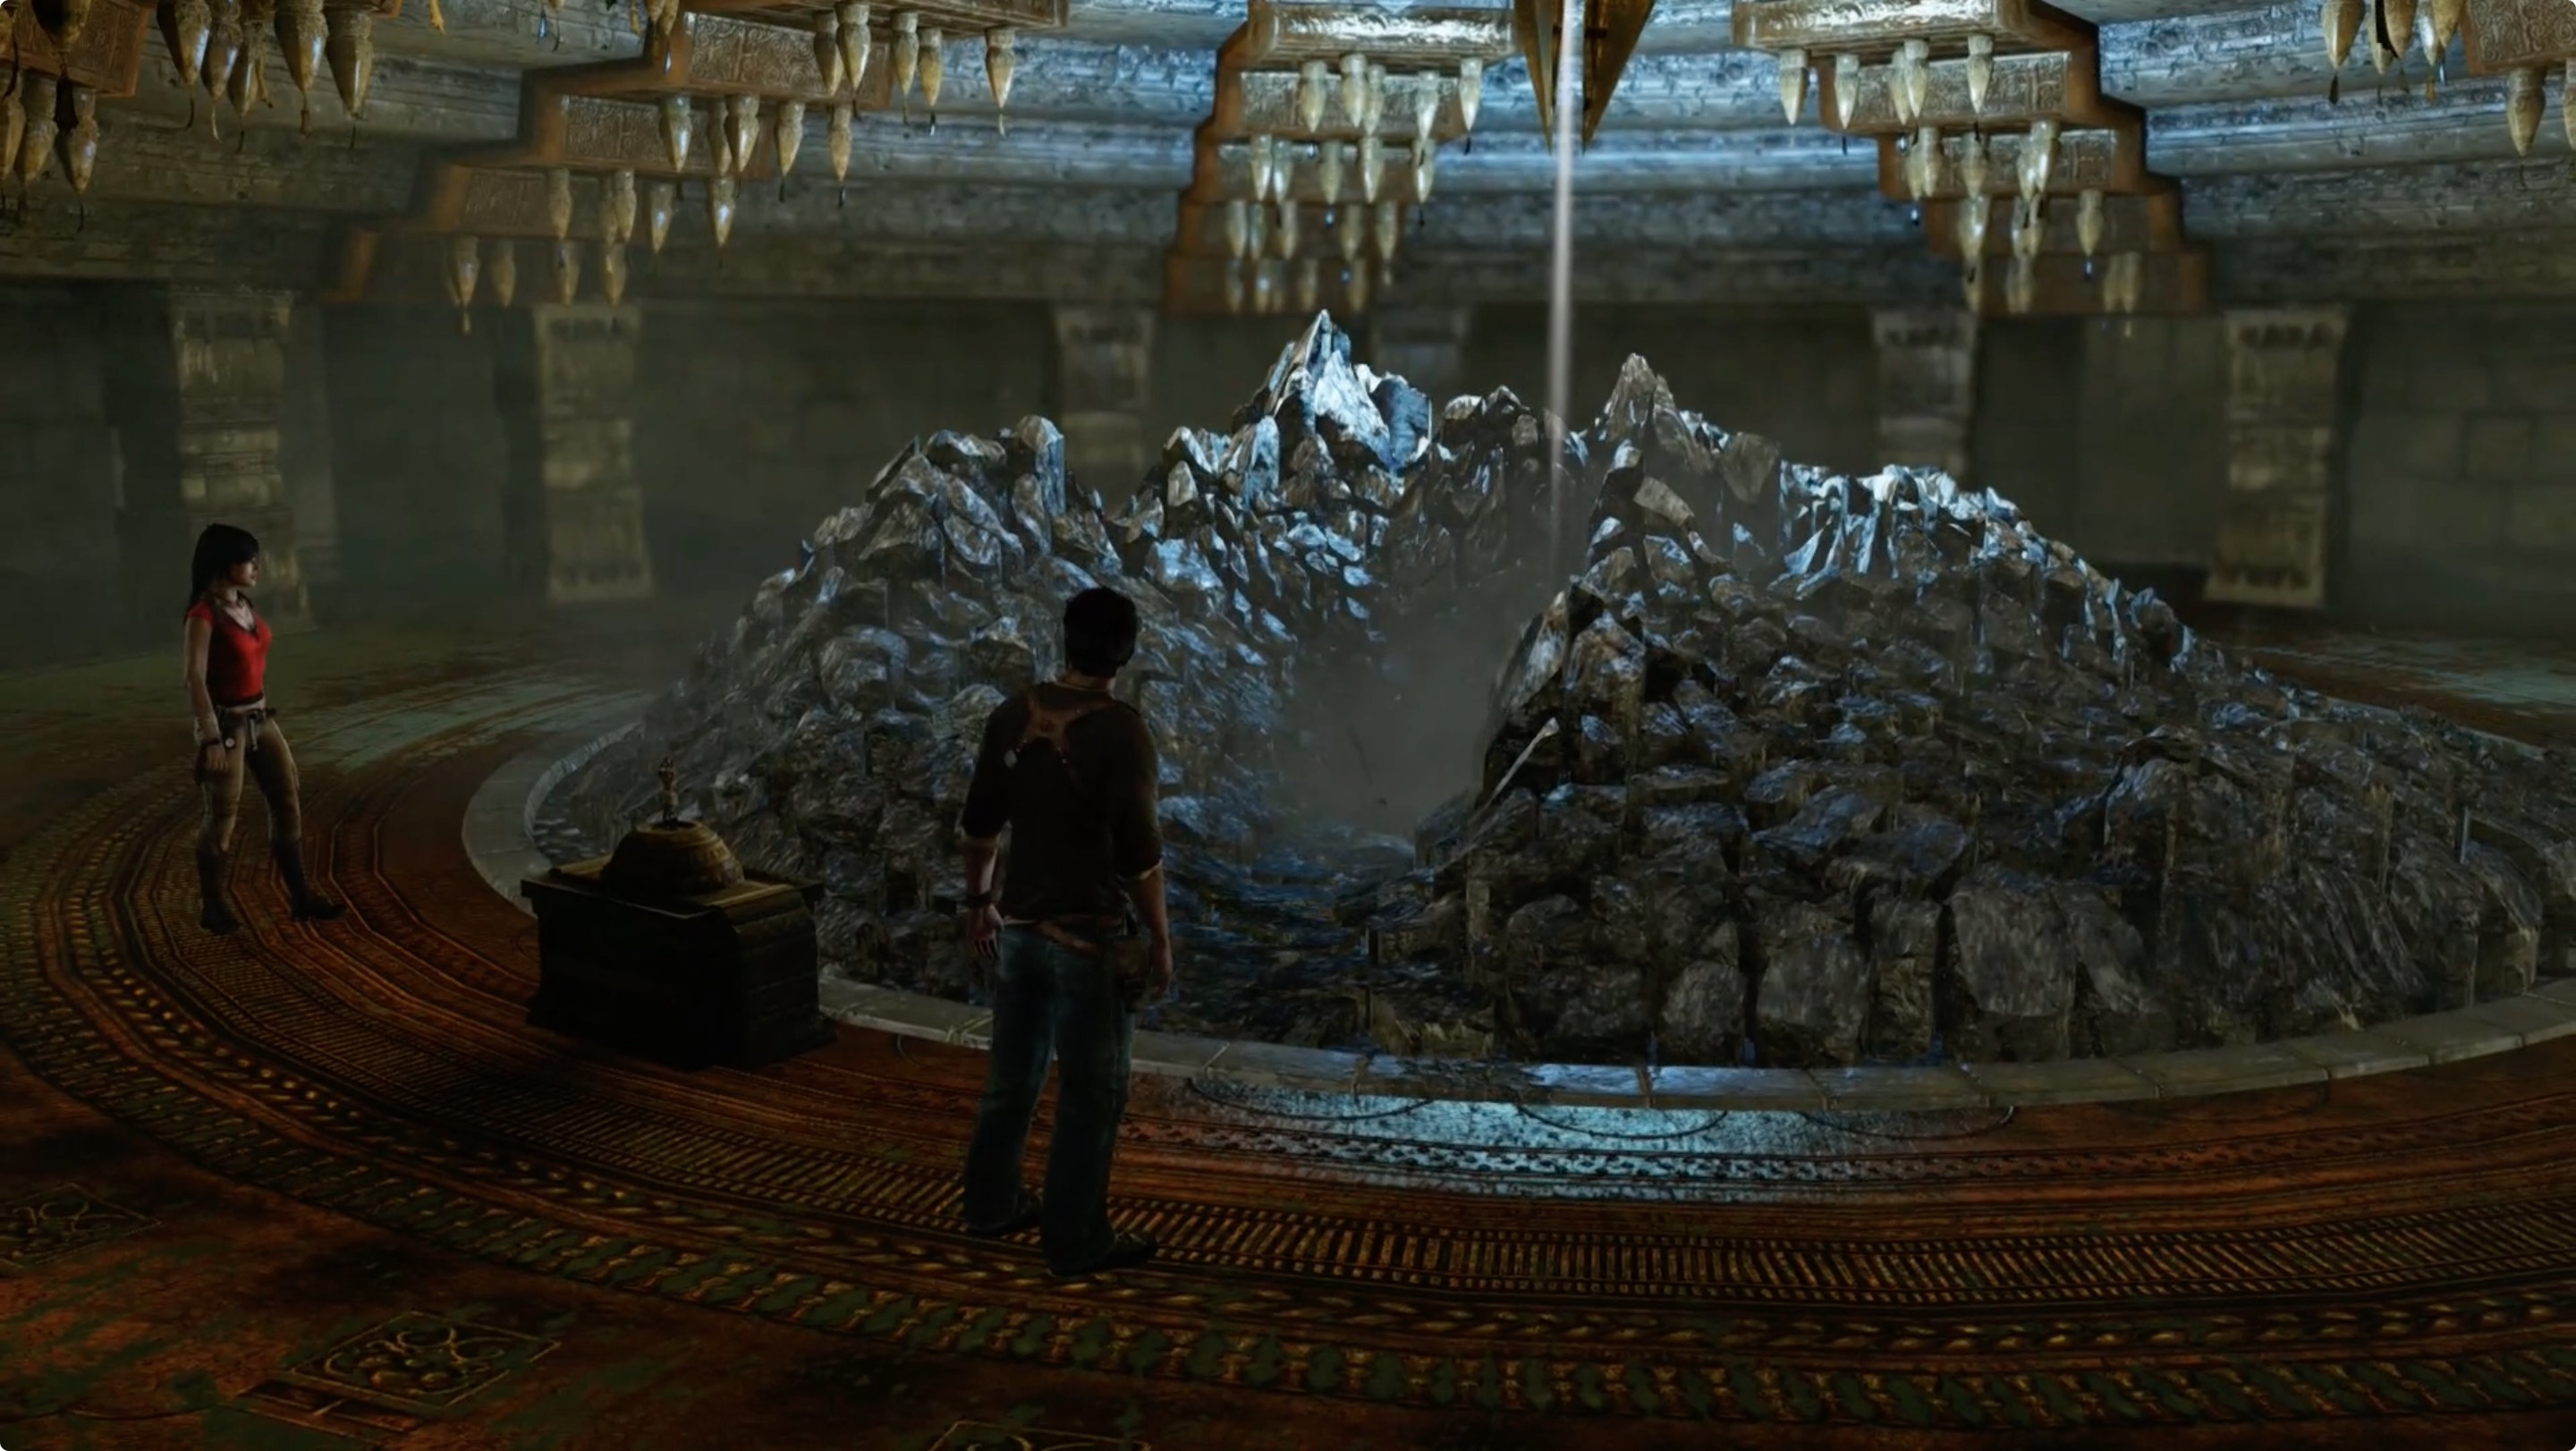 Uncharted 2: Among Thieves 'Path of Light' treasure locations